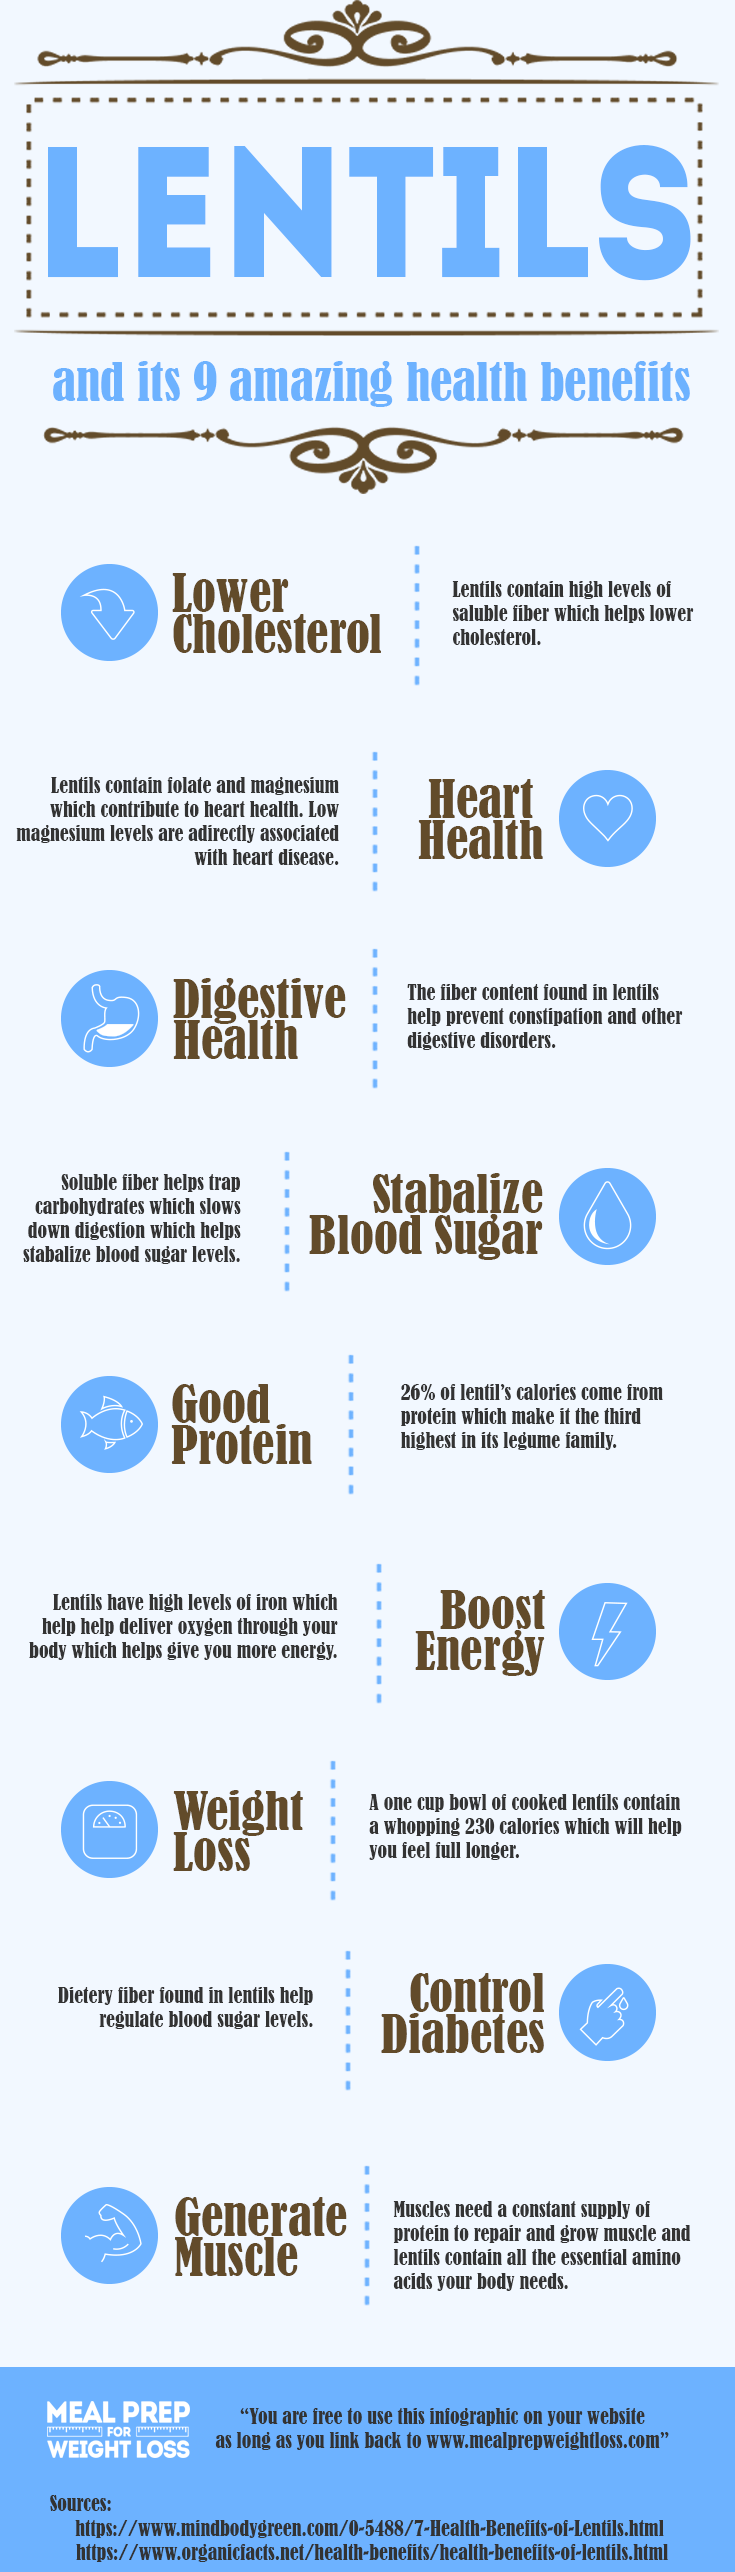 9 Amazing Health Benefits of Eating Lentil Pulse [infographic]